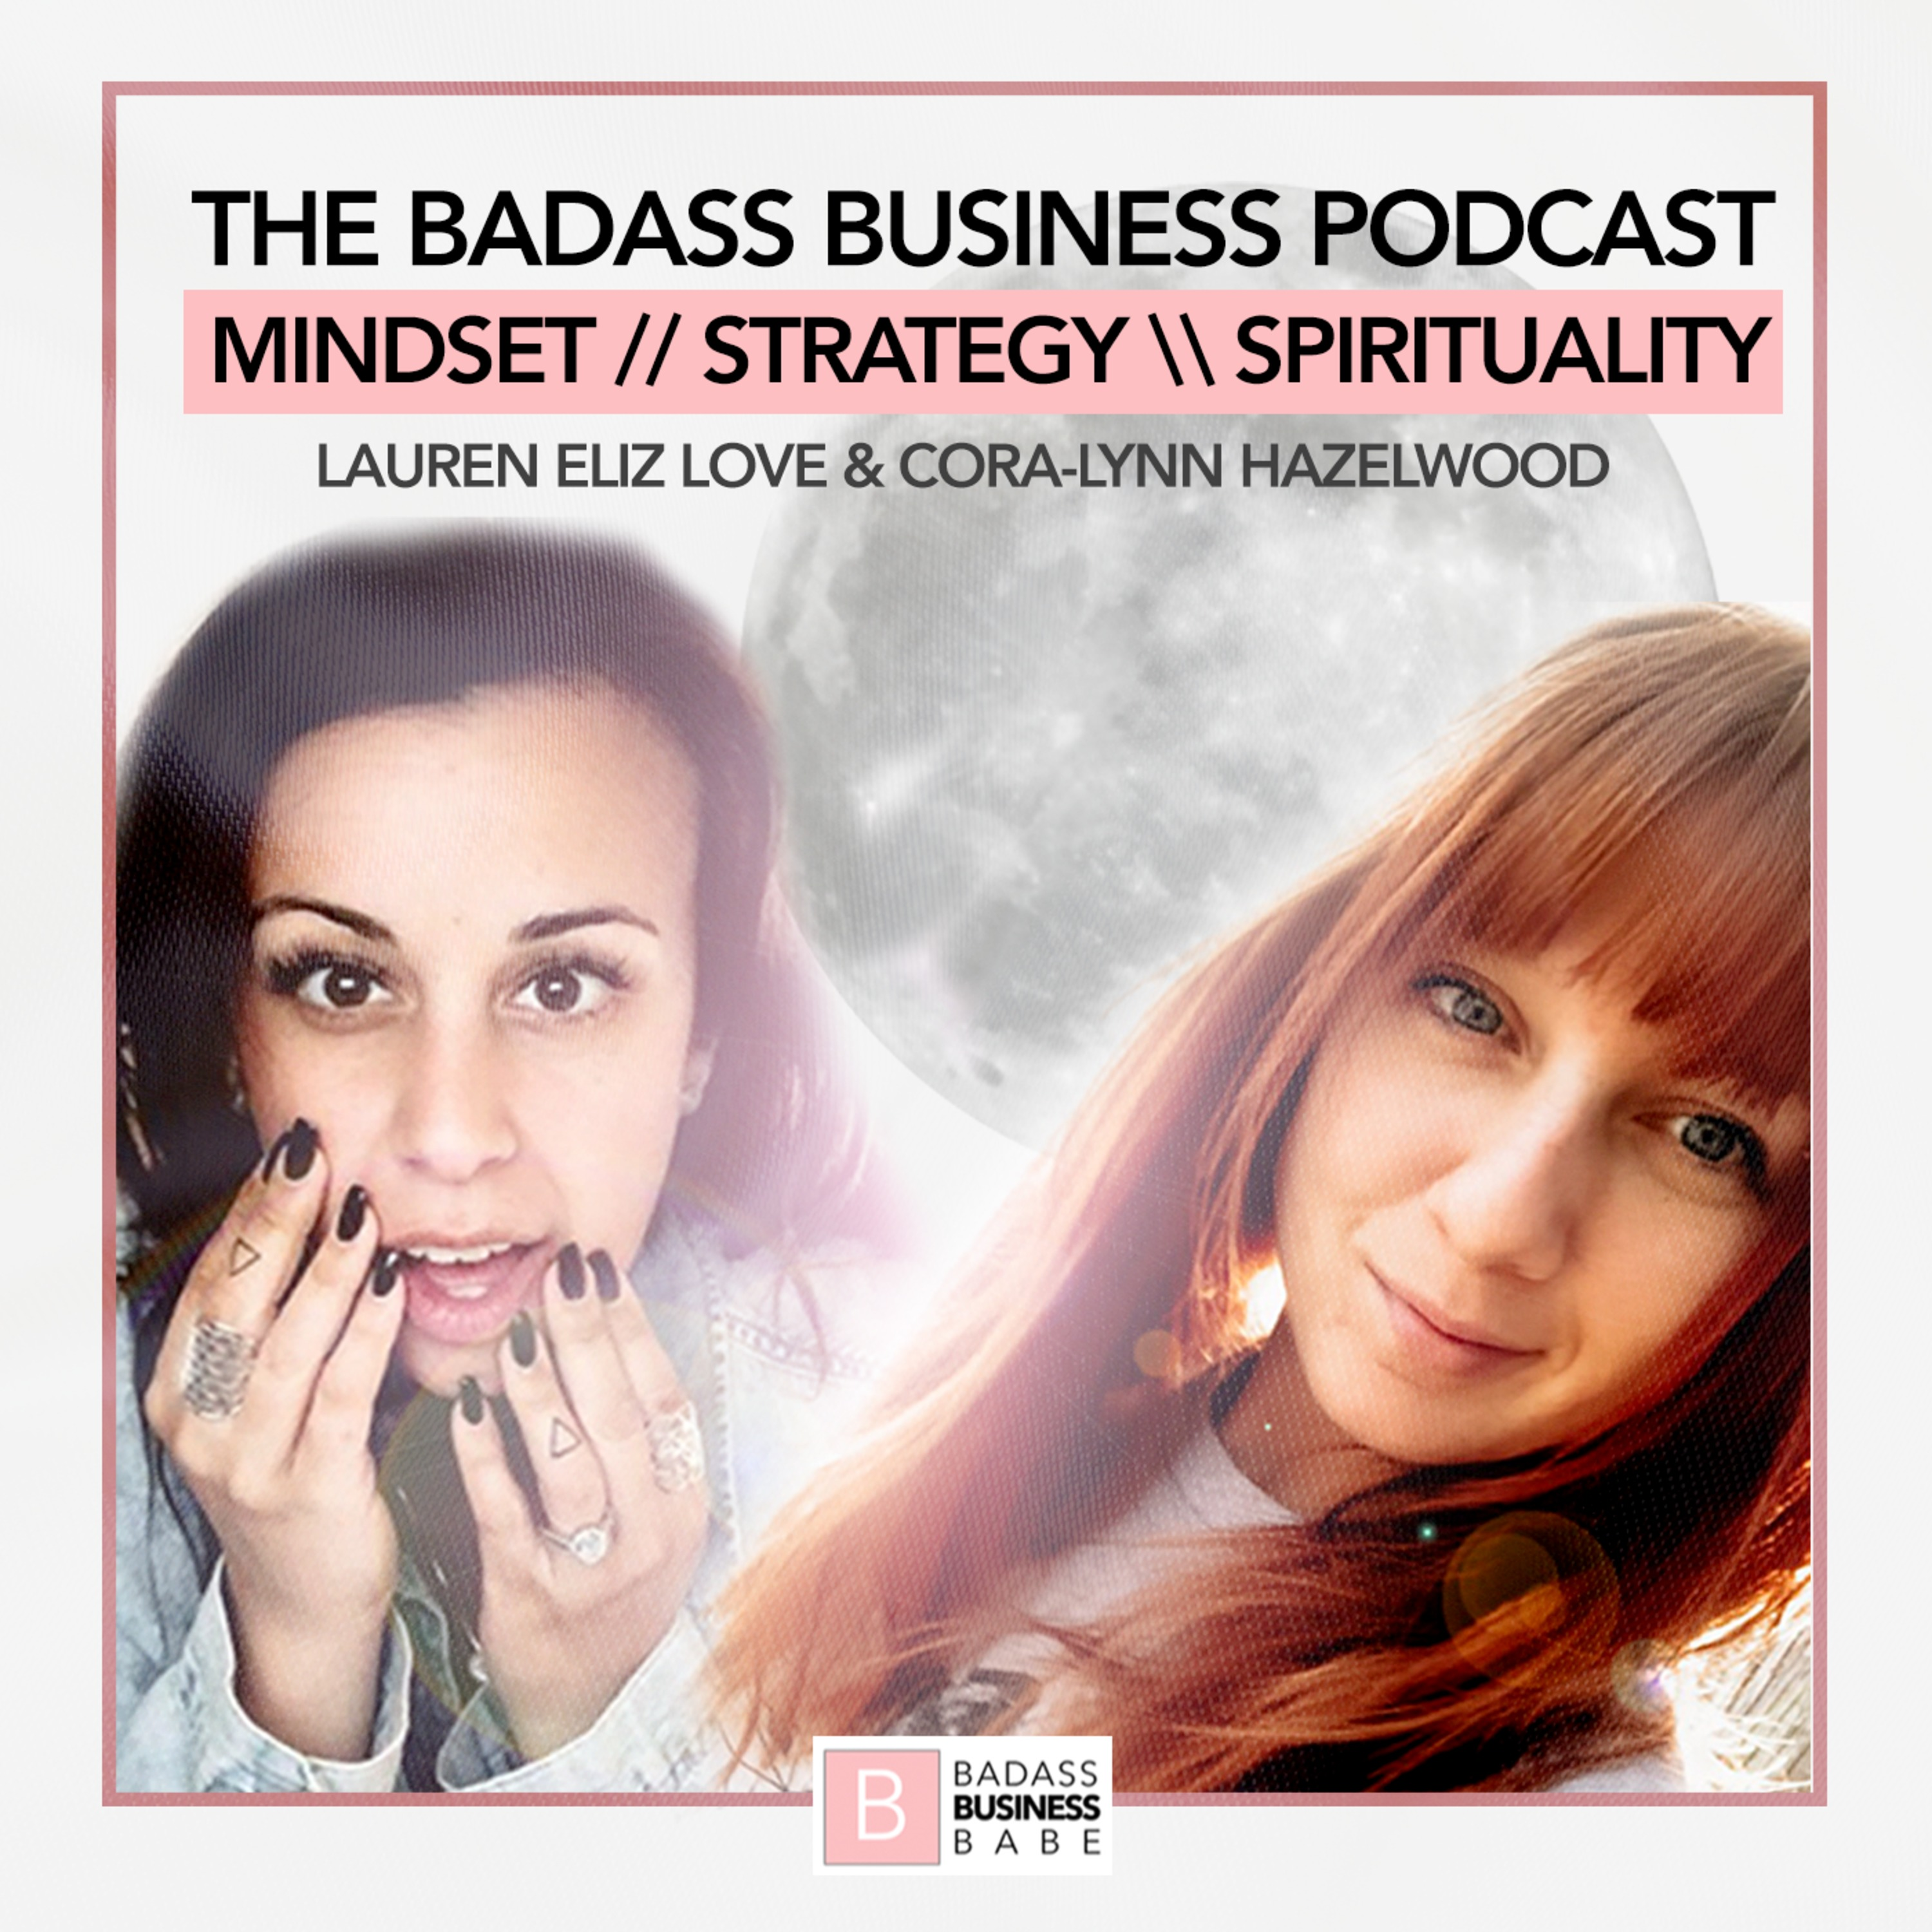 Badass Business Podcast on Apple Podcasts